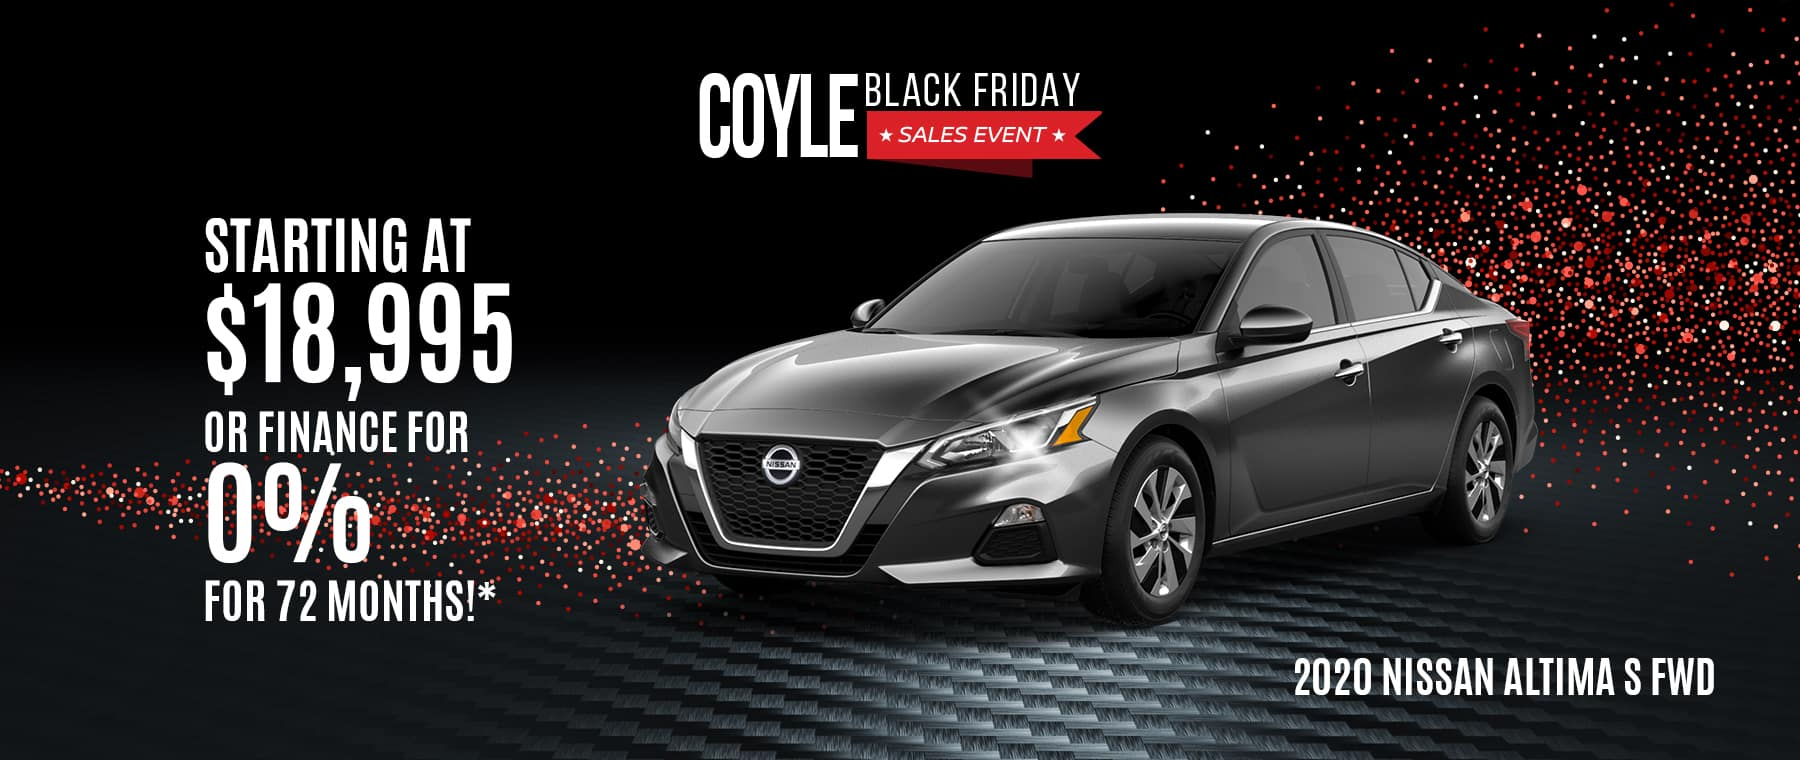 Special offer on a New Nissan Altima near Sellersburg, Indiana